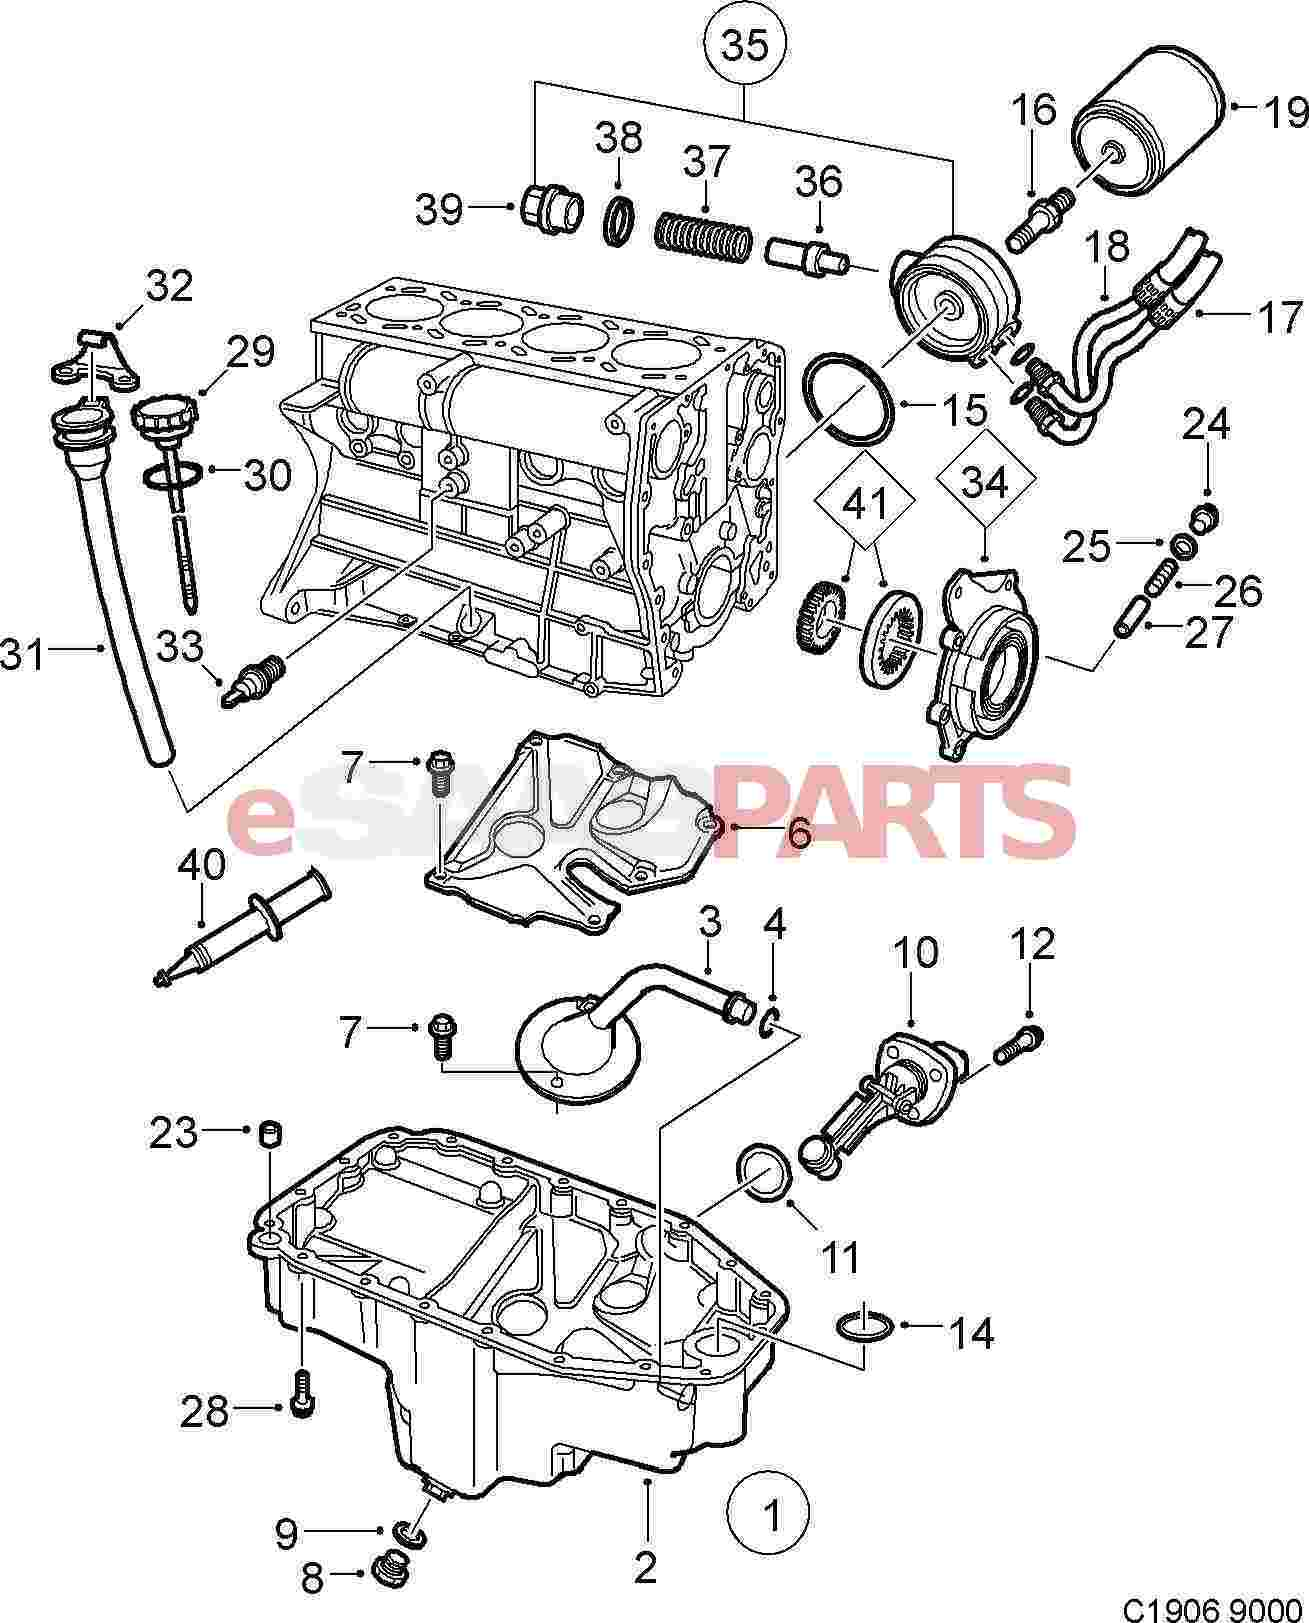 Saab Oil Filter L V X Genuine Parts 4 2l Engine Diagram